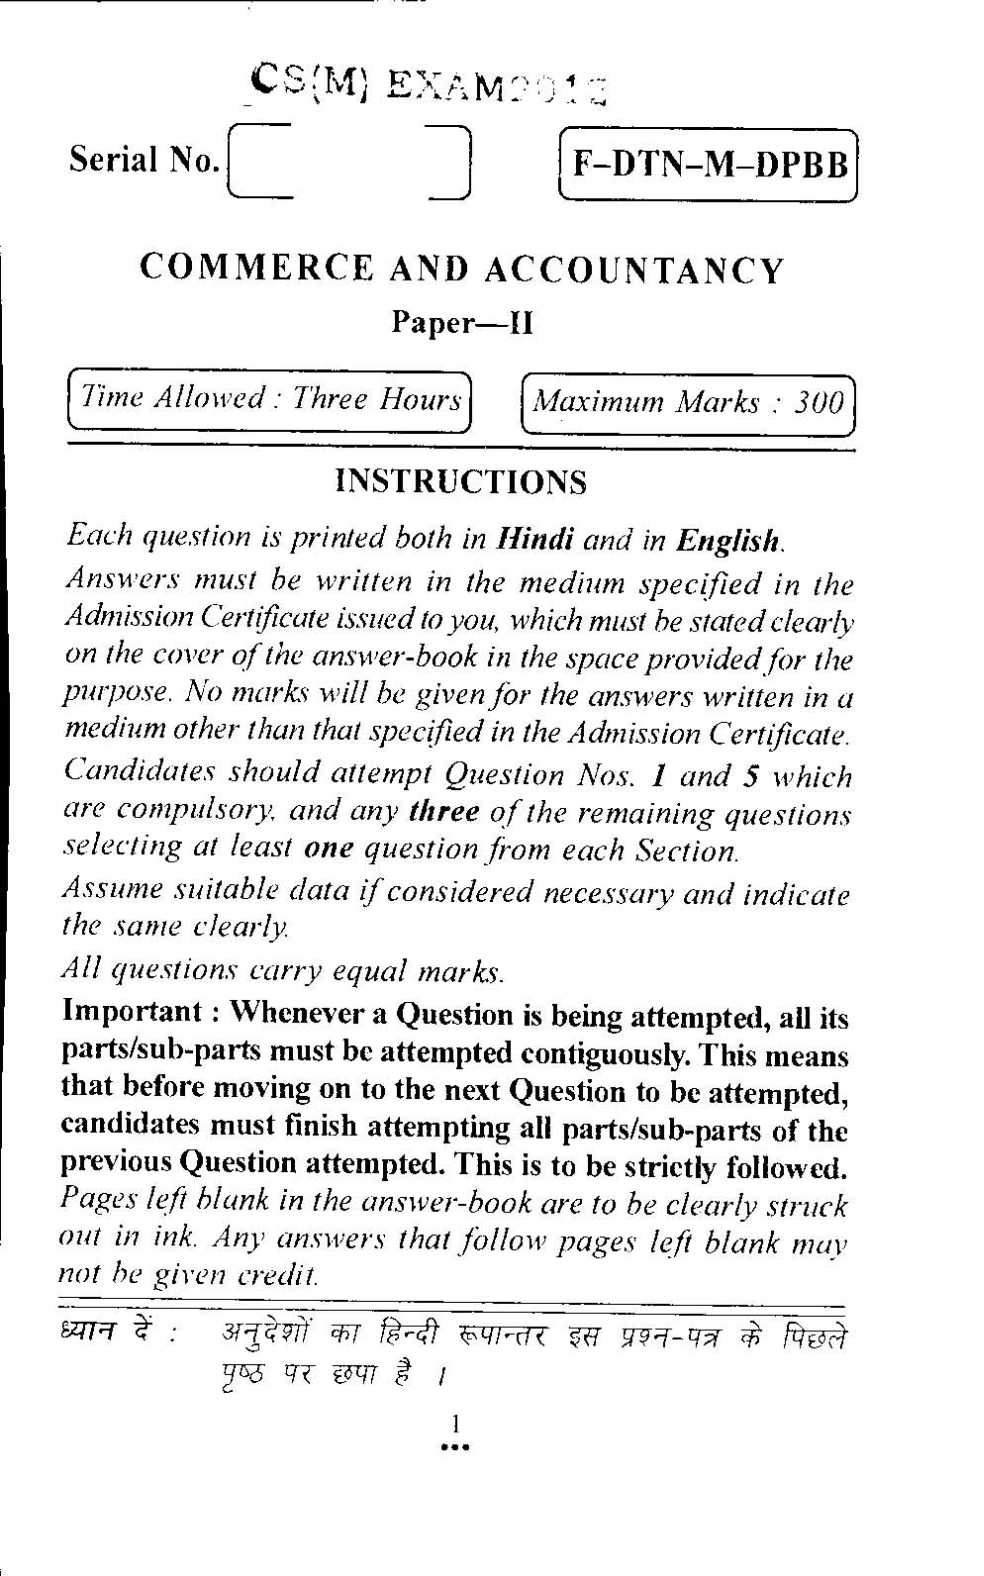 009 Essay Example Civil Services Examination Commerce And Accountancy Paper Ii Previous Years Que Racism Fantastic Argumentative Topics Examples Full